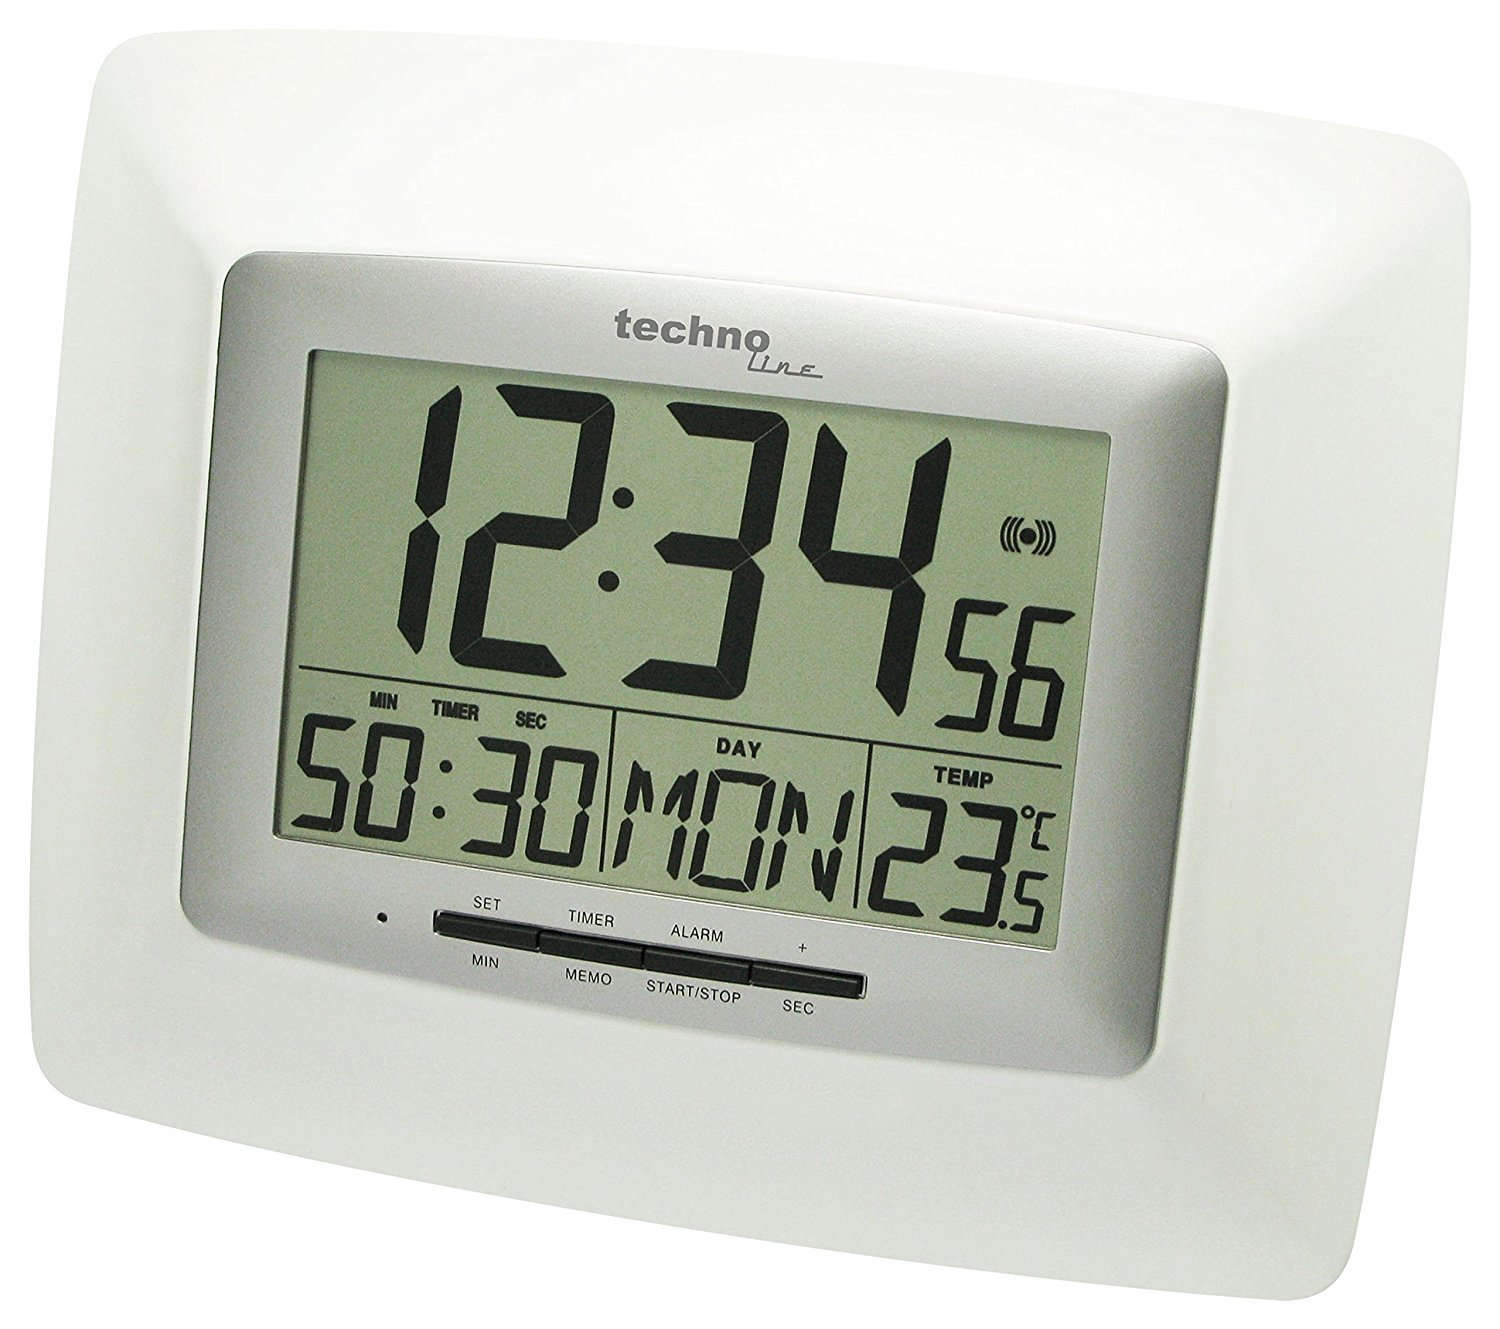 Technoline WS 8100 Reloj de pared digital (plata con batería): Amazon.es: Hogar